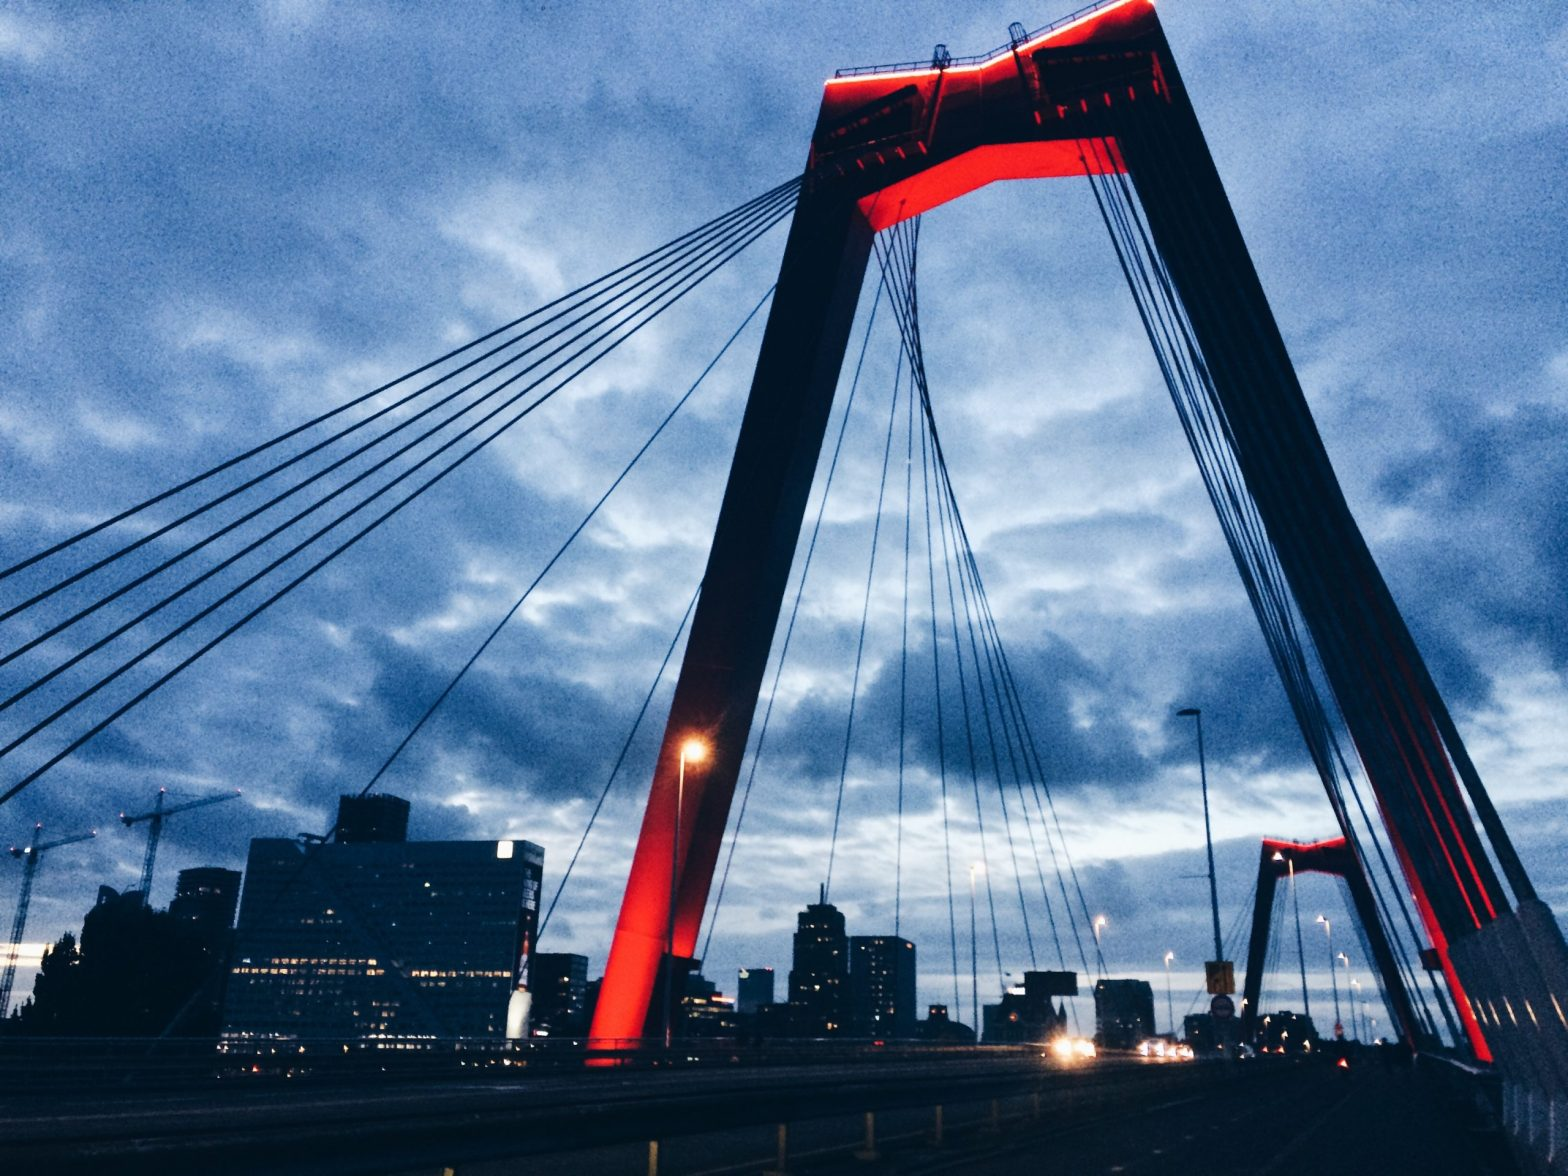 A big red bridge against deep blue and moody sky in Rotterdam